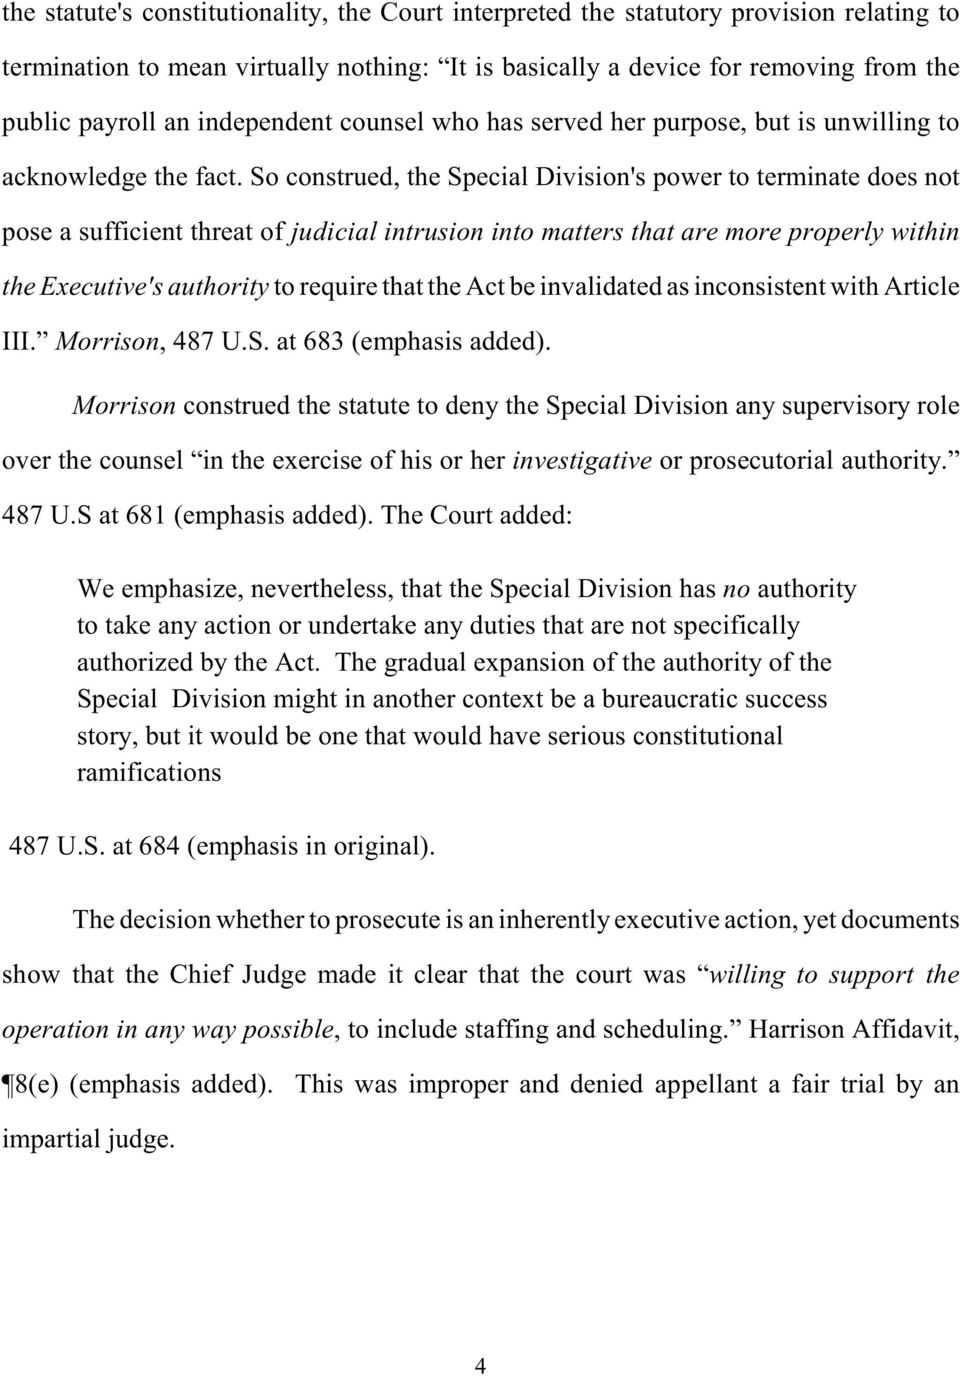 So construed, the Special Division's power to terminate does not pose a sufficient threat of judicial intrusion into matters that are more properly within the Executive's authority to require that